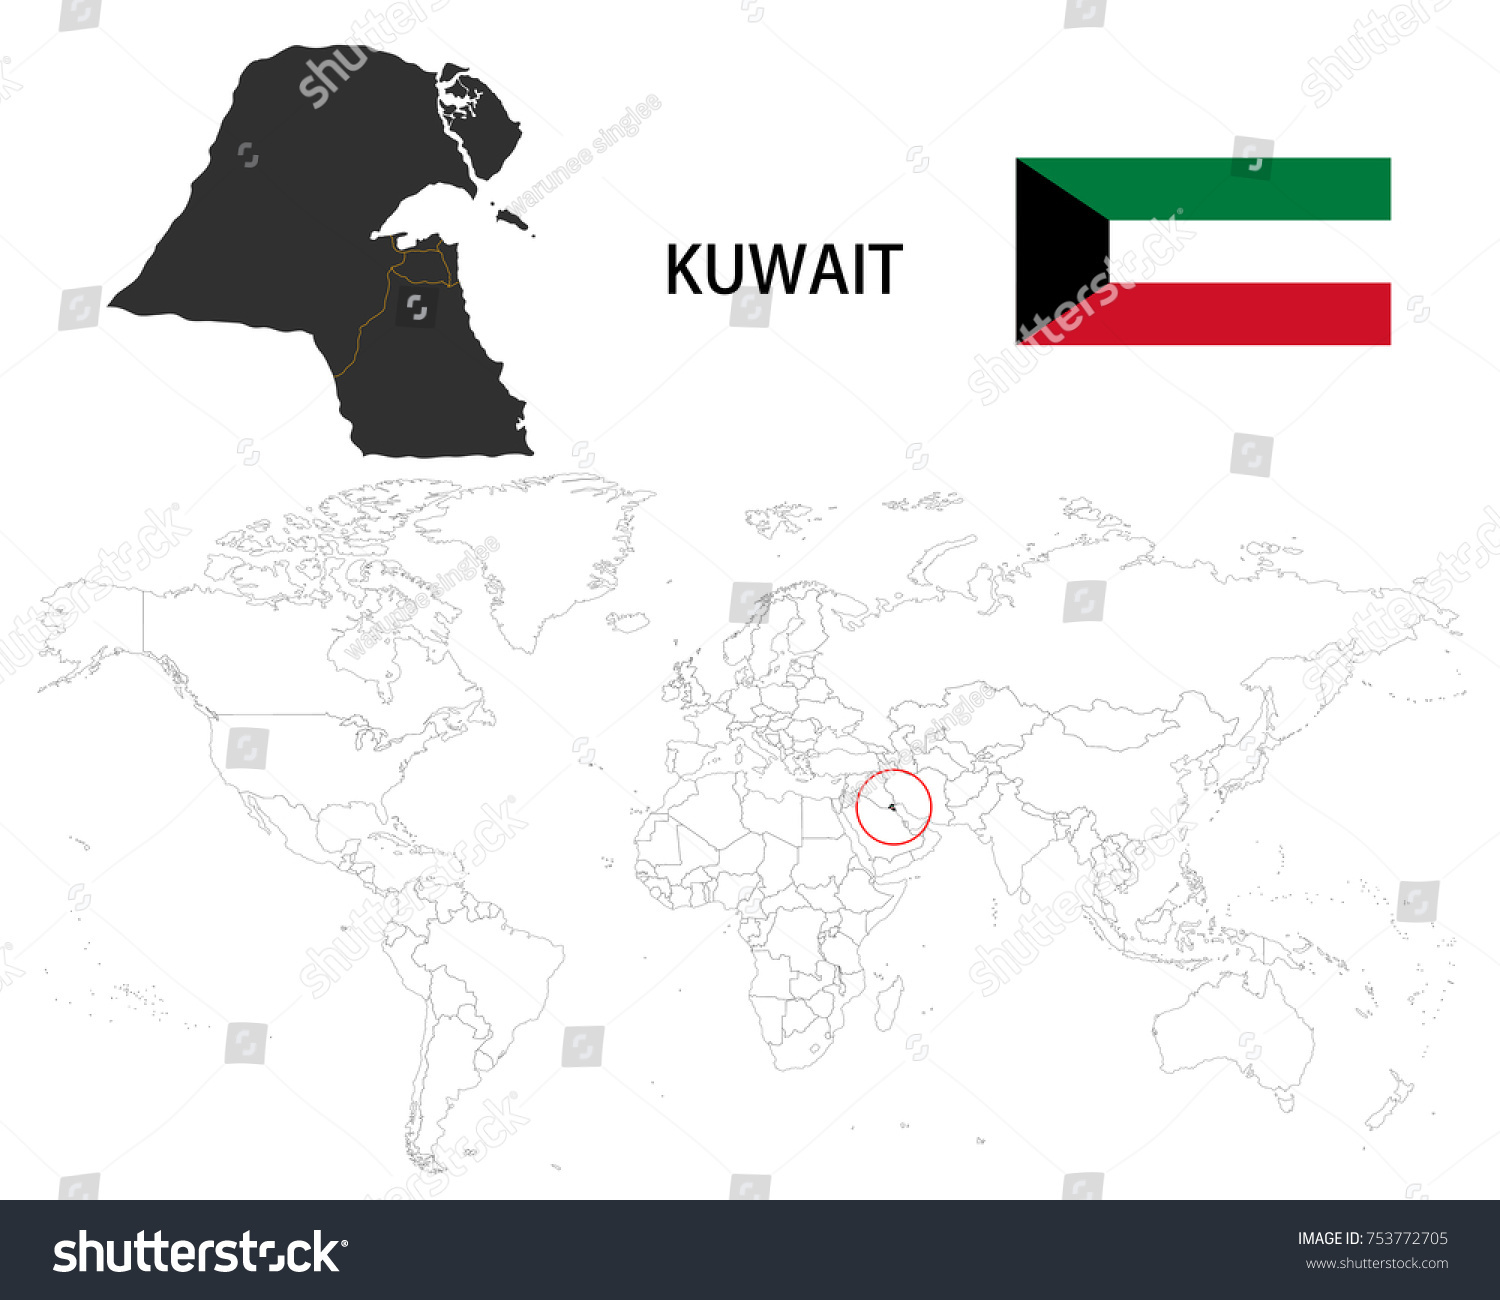 Kuwait map on world map flag stock vector 753772705 shutterstock kuwait map on a world map with flag on white background gumiabroncs Image collections